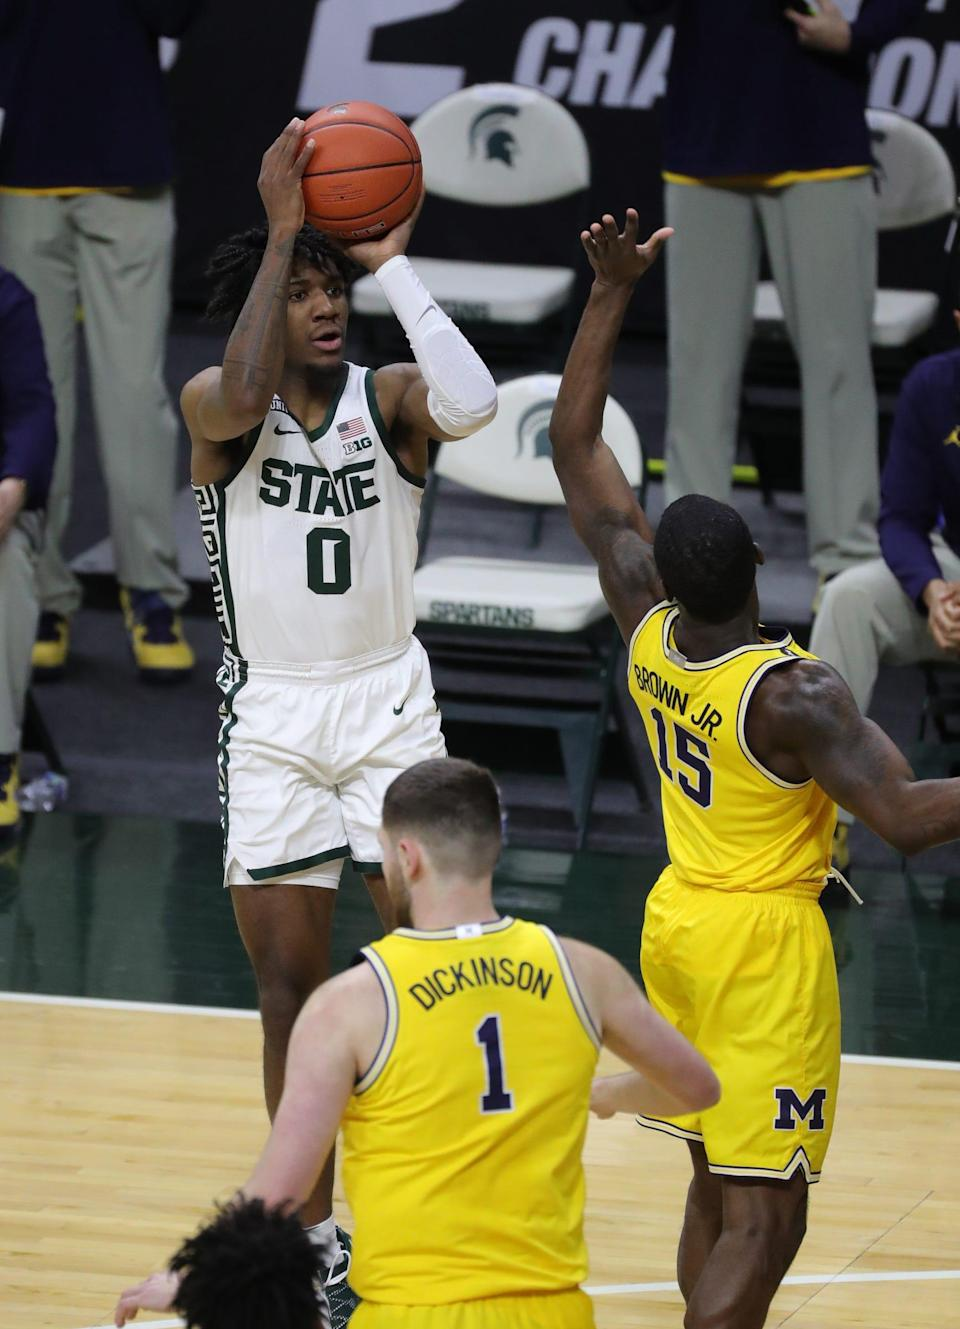 Michigan State Spartans forward Aaron Henry scores against Michigan Wolverines guard Chaundee Brown on Sunday, March 7, 2021, at the Breslin Center in East Lansing.